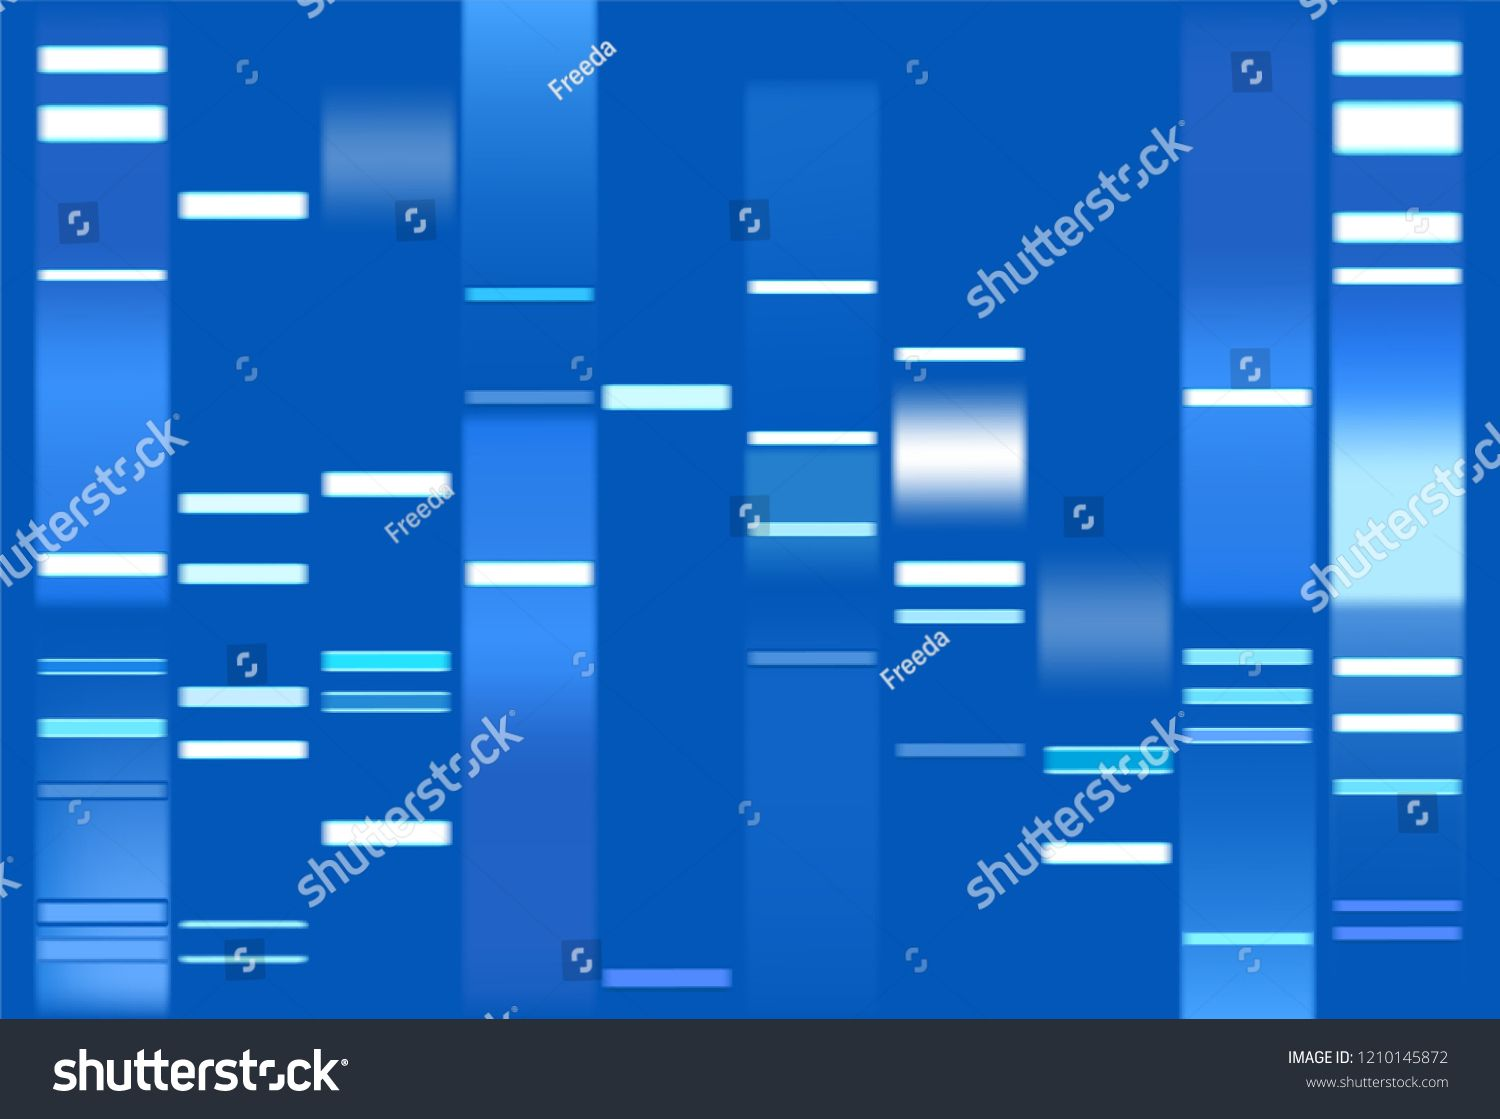 Vector graphic template of blue hues monochromatic big ... on dna code, dna gel electrophoresis, dna samples, dna testing, dna fingerprinting, dna comparison, dna extraction, dna fragmentation, dna replication, dna profiling, dna sequence chart, dna mapping, dna structure, dna nucleotide sequence, dna gene, dna double helix, dna background, dna amplification, dna molecule, dna chromatogram,